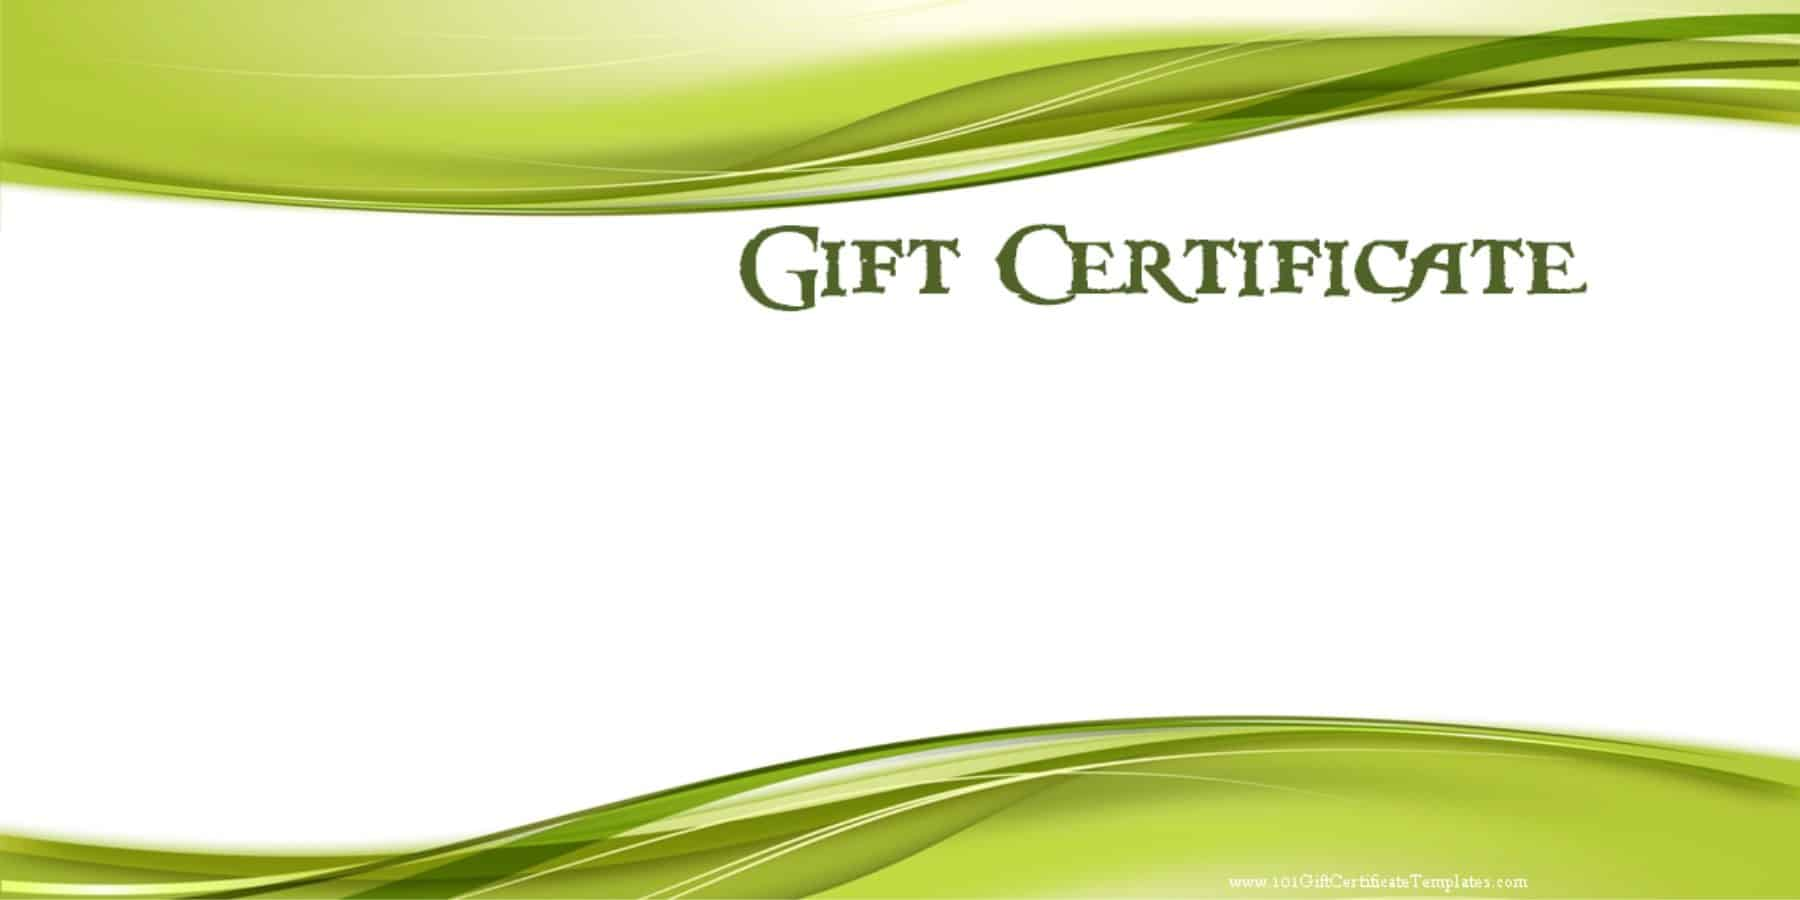 Printable gift certificate templates blank gift certificate which can be customized yadclub Choice Image